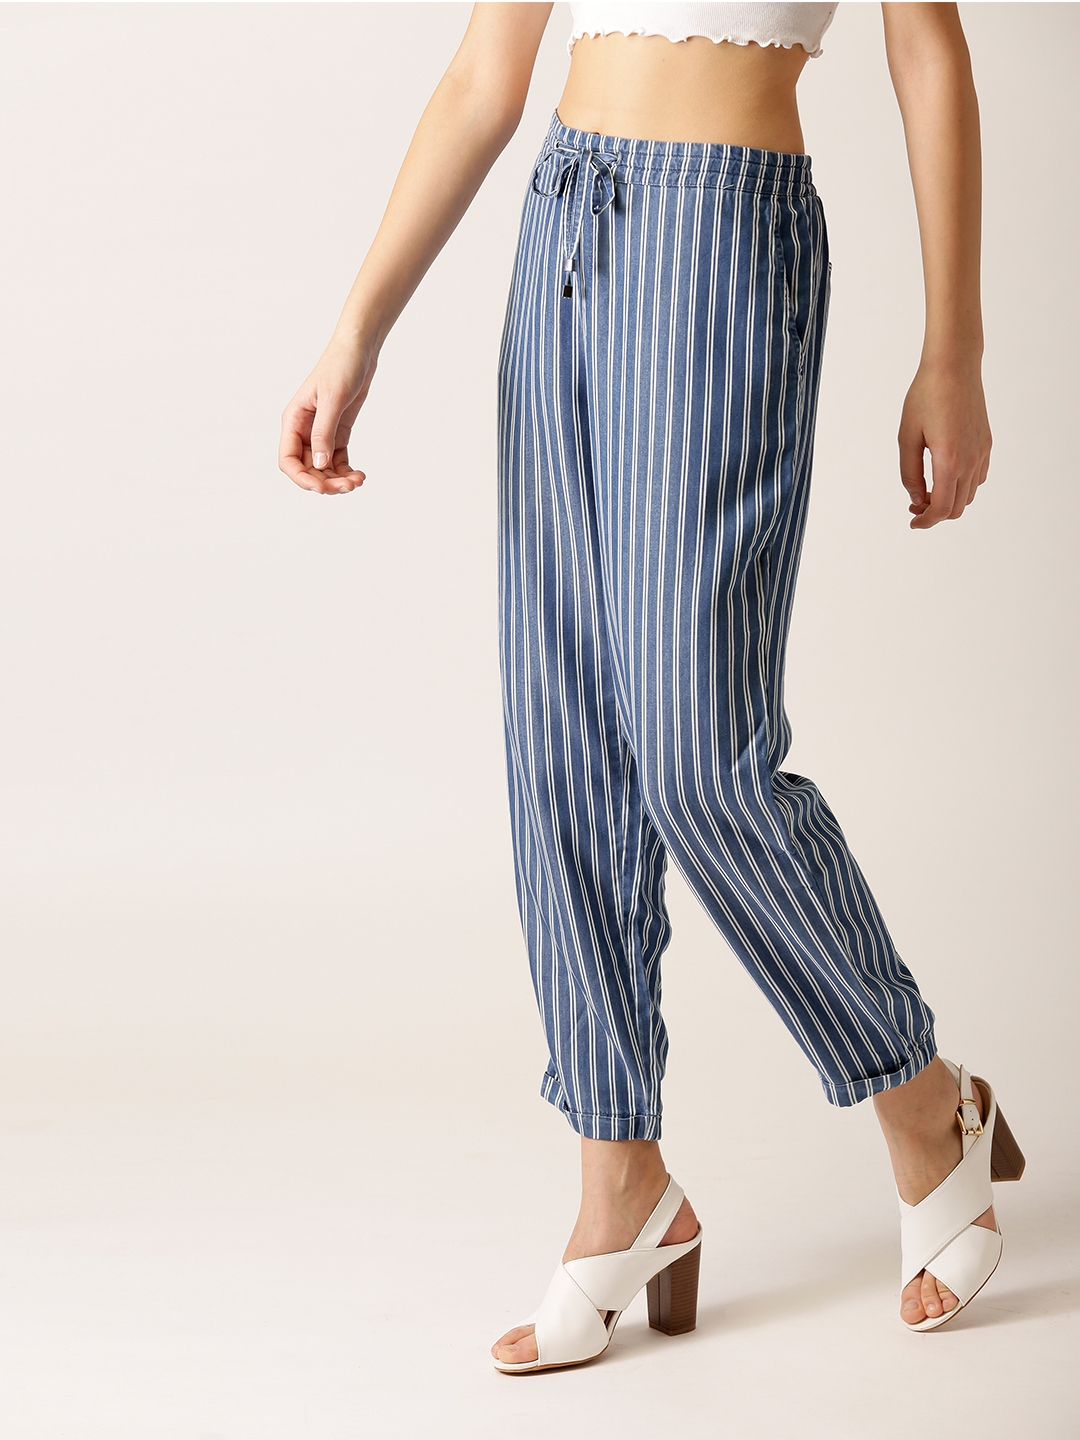 da3a2d0a288 Buy ESPRIT Women Blue   White Regular Fit Striped Cropped Trousers ...